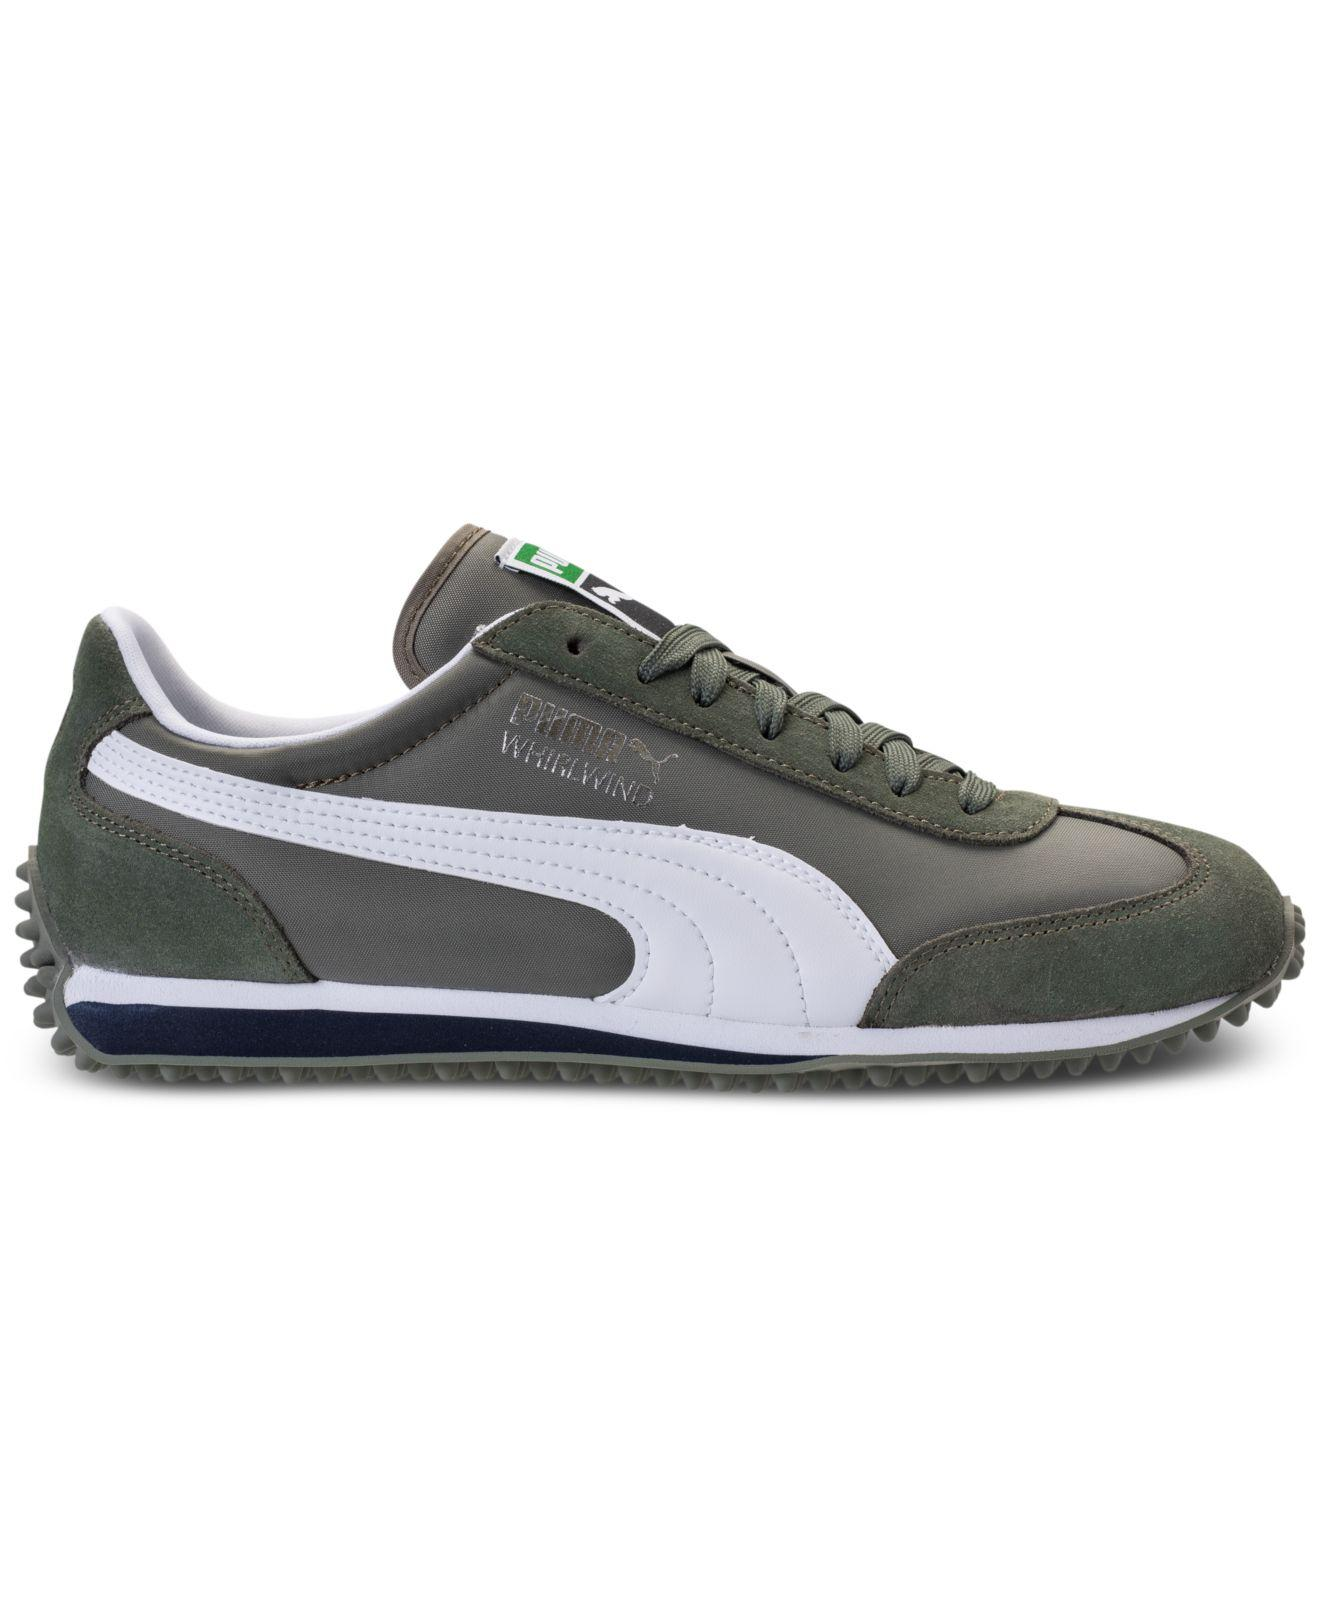 Lyst - Puma Men s Whirlwind Casual Sneakers From Finish Line in ... d66c0cec4